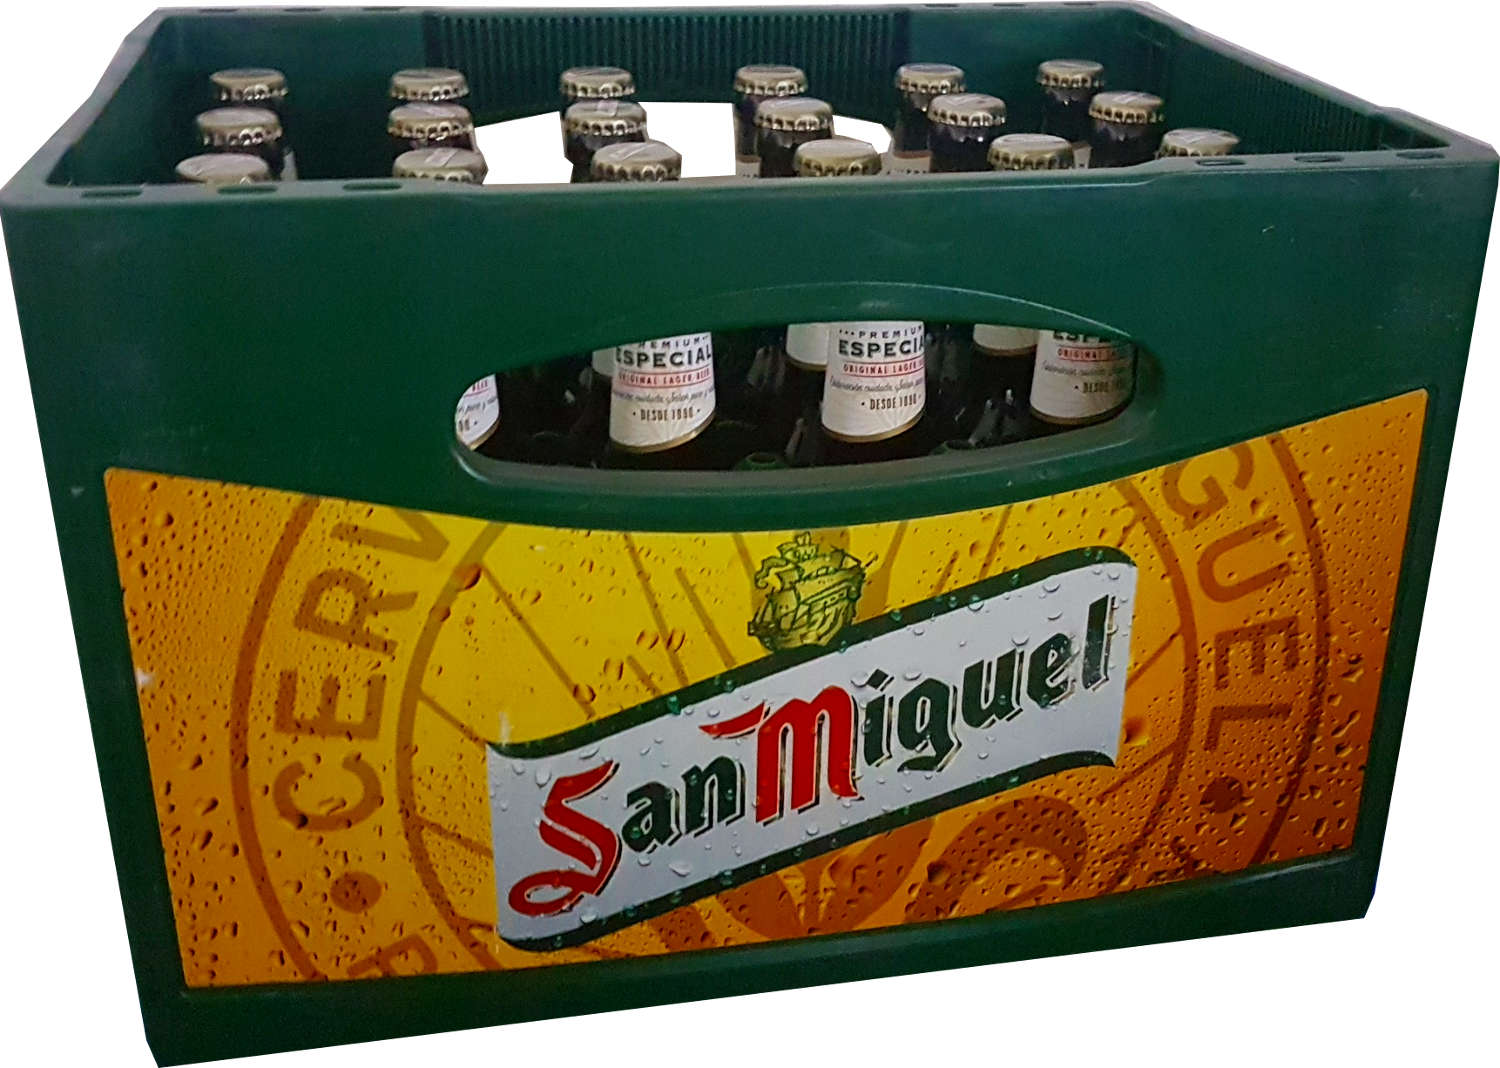 24 X San Miguel Especial 5 4 Vol 0 33l Original Case My Food Online Net